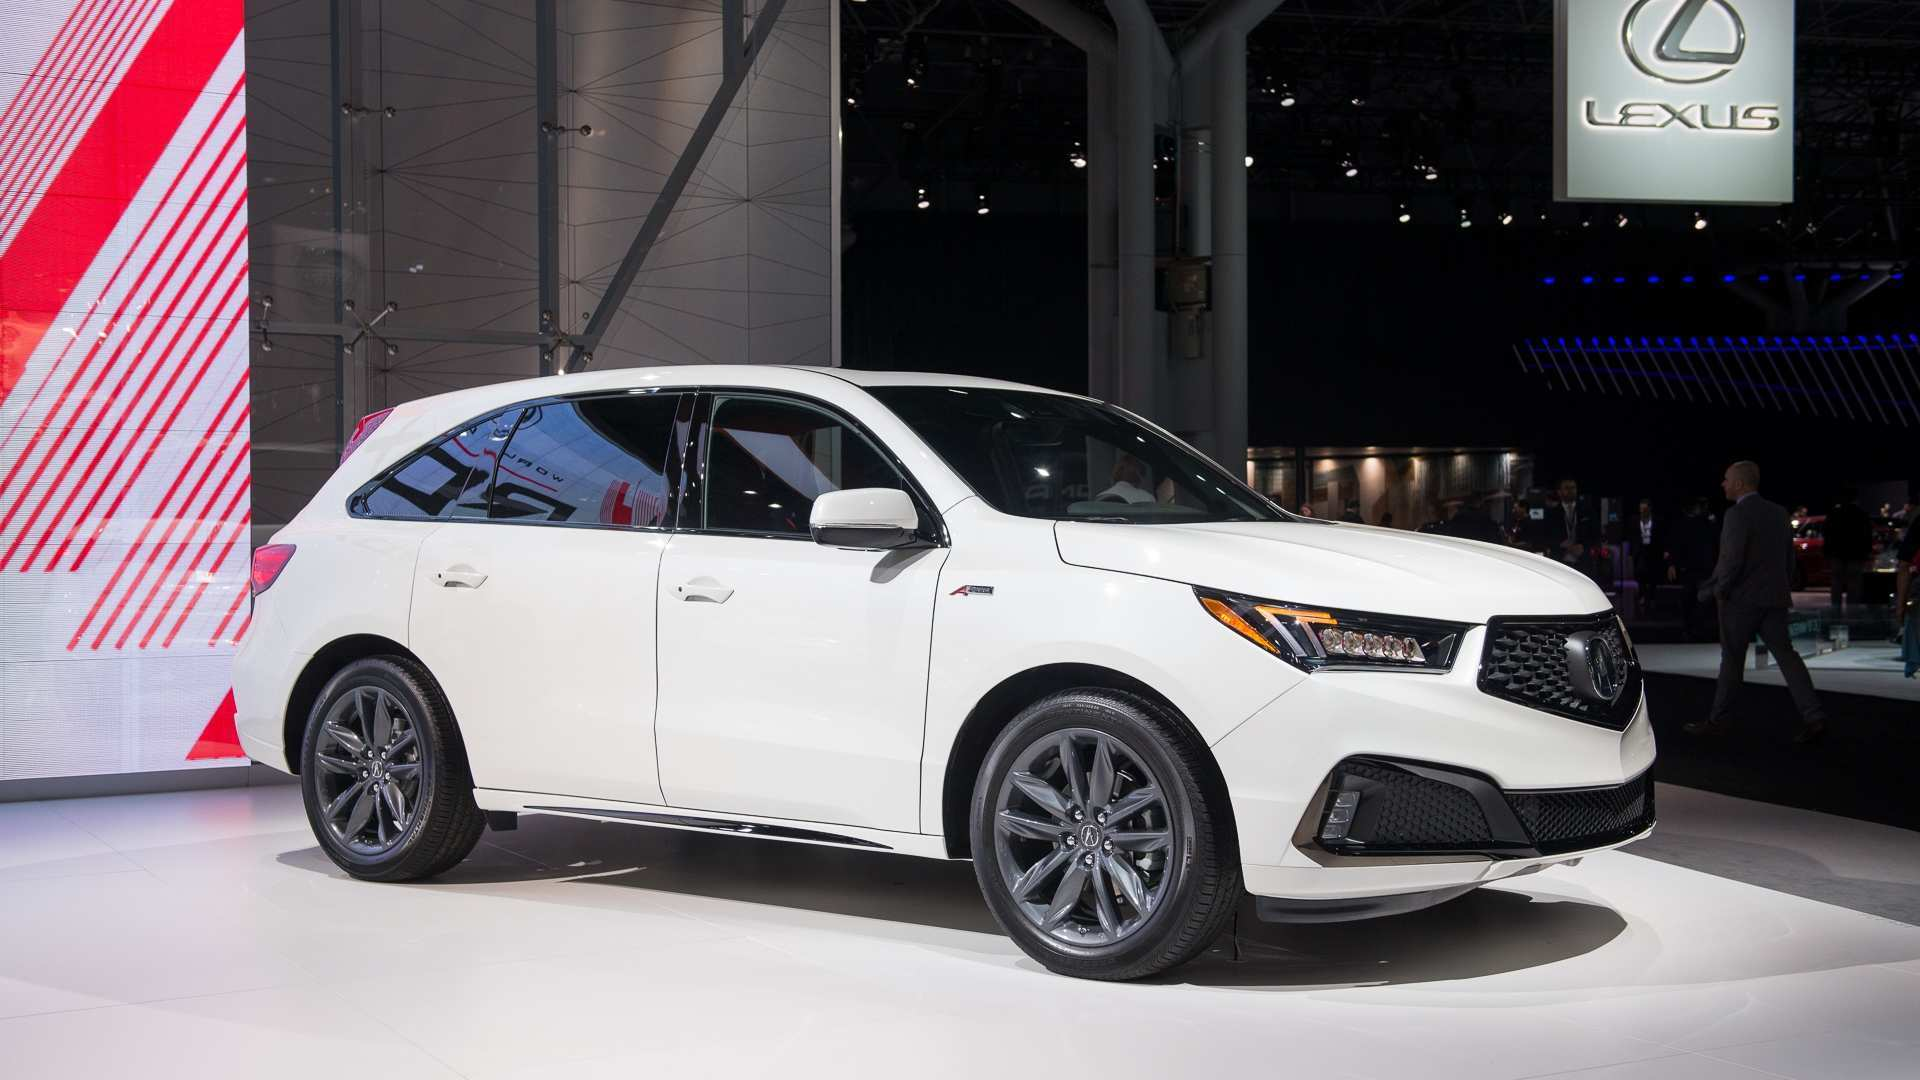 18 Great New Acura Mdx 2019 Updates First Drive Specs and Review by New Acura Mdx 2019 Updates First Drive